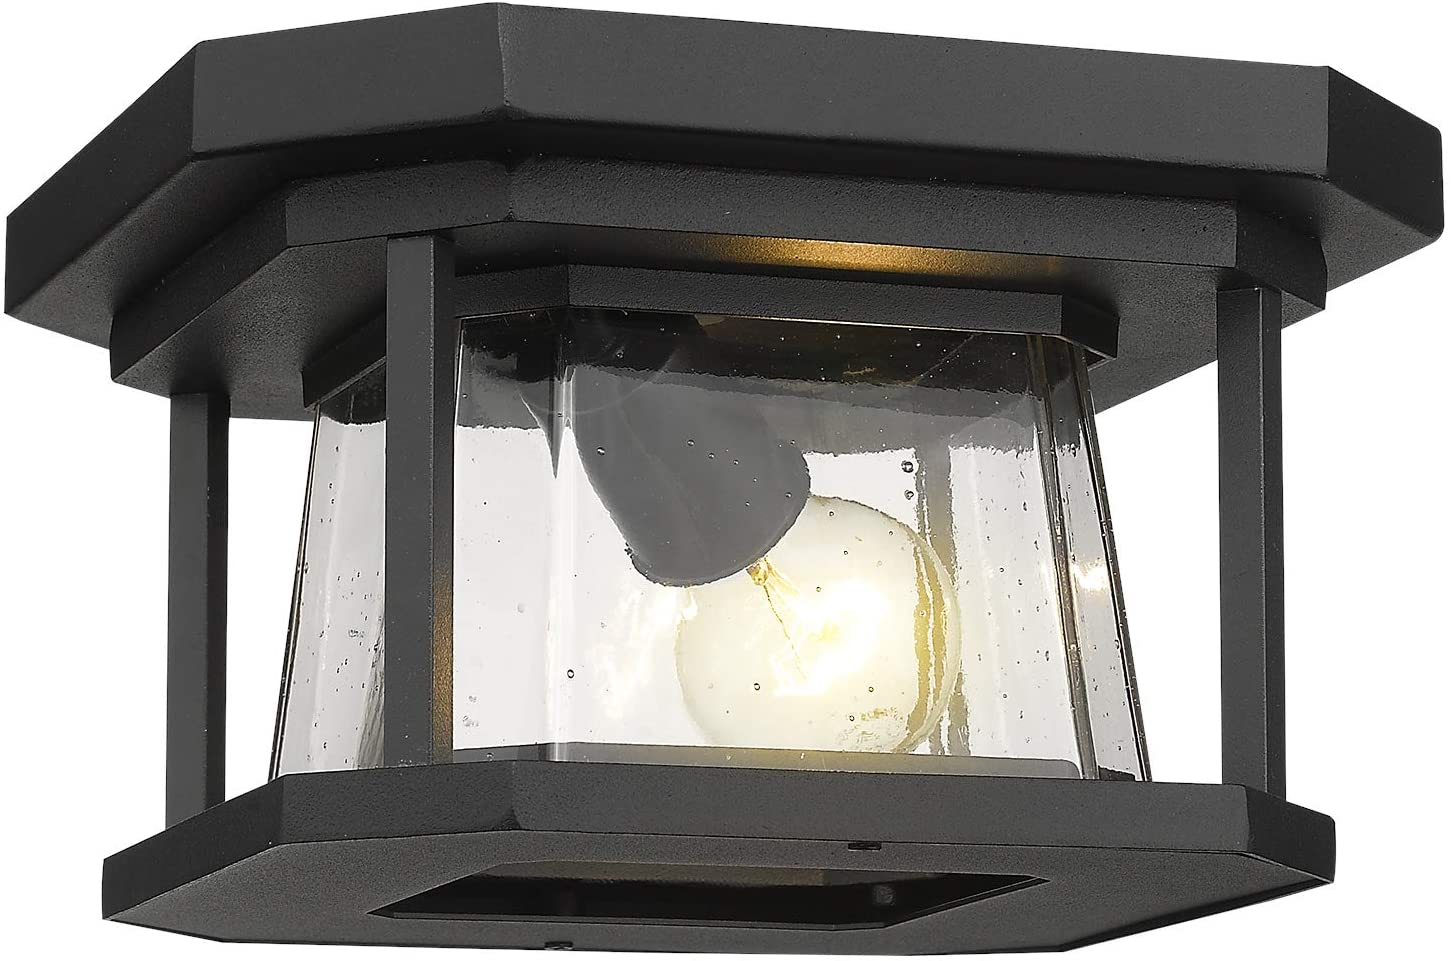 Zeyu 12 Inch Ceiling Light Fixture, Black Flush Mount Ceiling Light, Seeded Glass Shade, ZW02-F BK